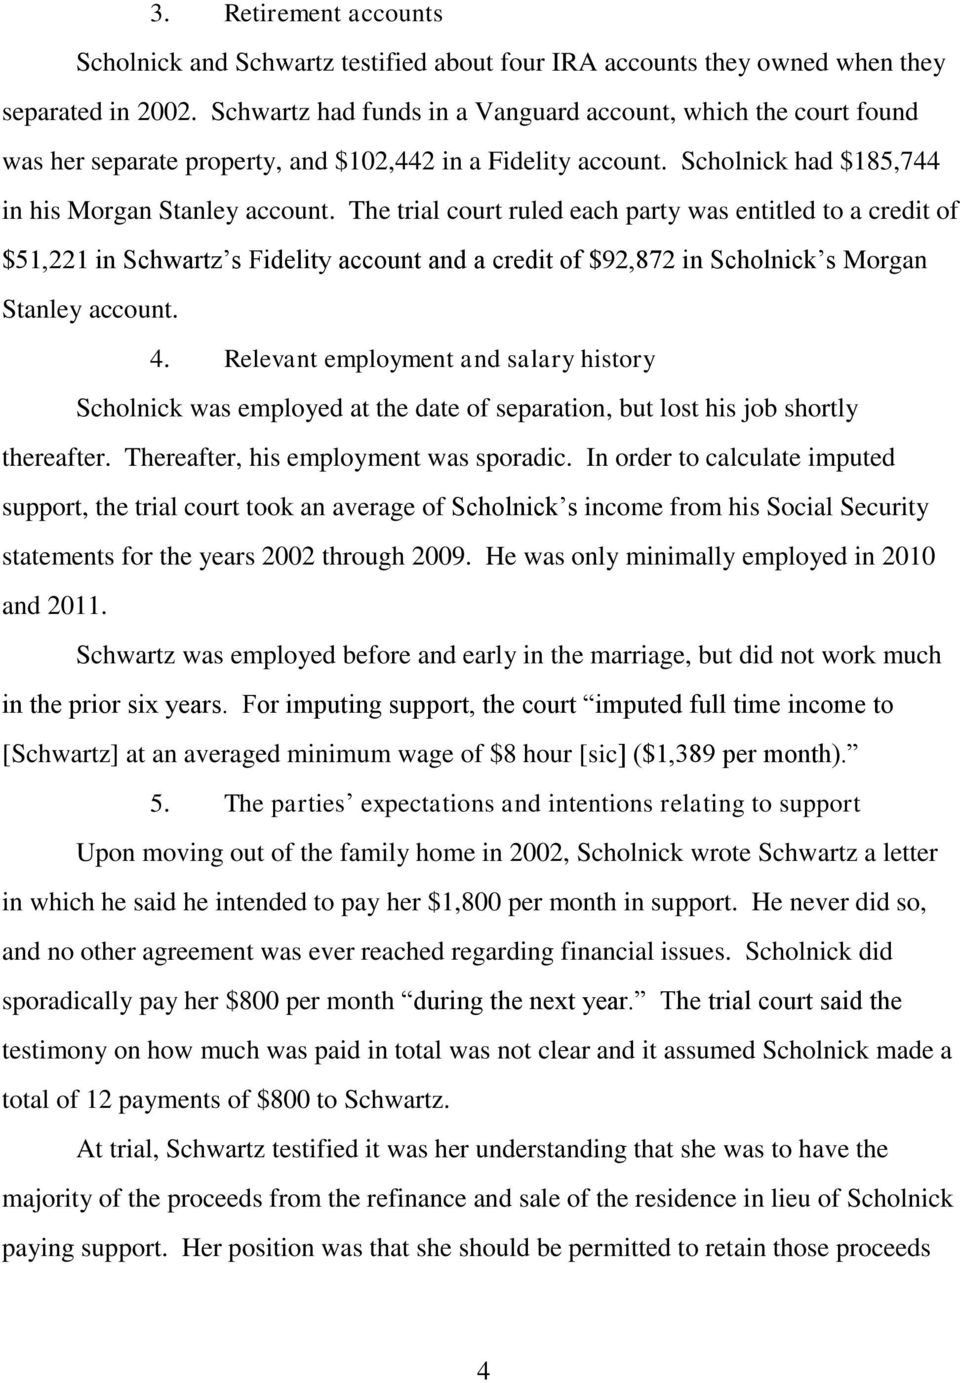 The trial court ruled each party was entitled to a credit of $51,221 in Schwartz s Fidelity account and a credit of $92,872 in Scholnick s Morgan Stanley account. 4.